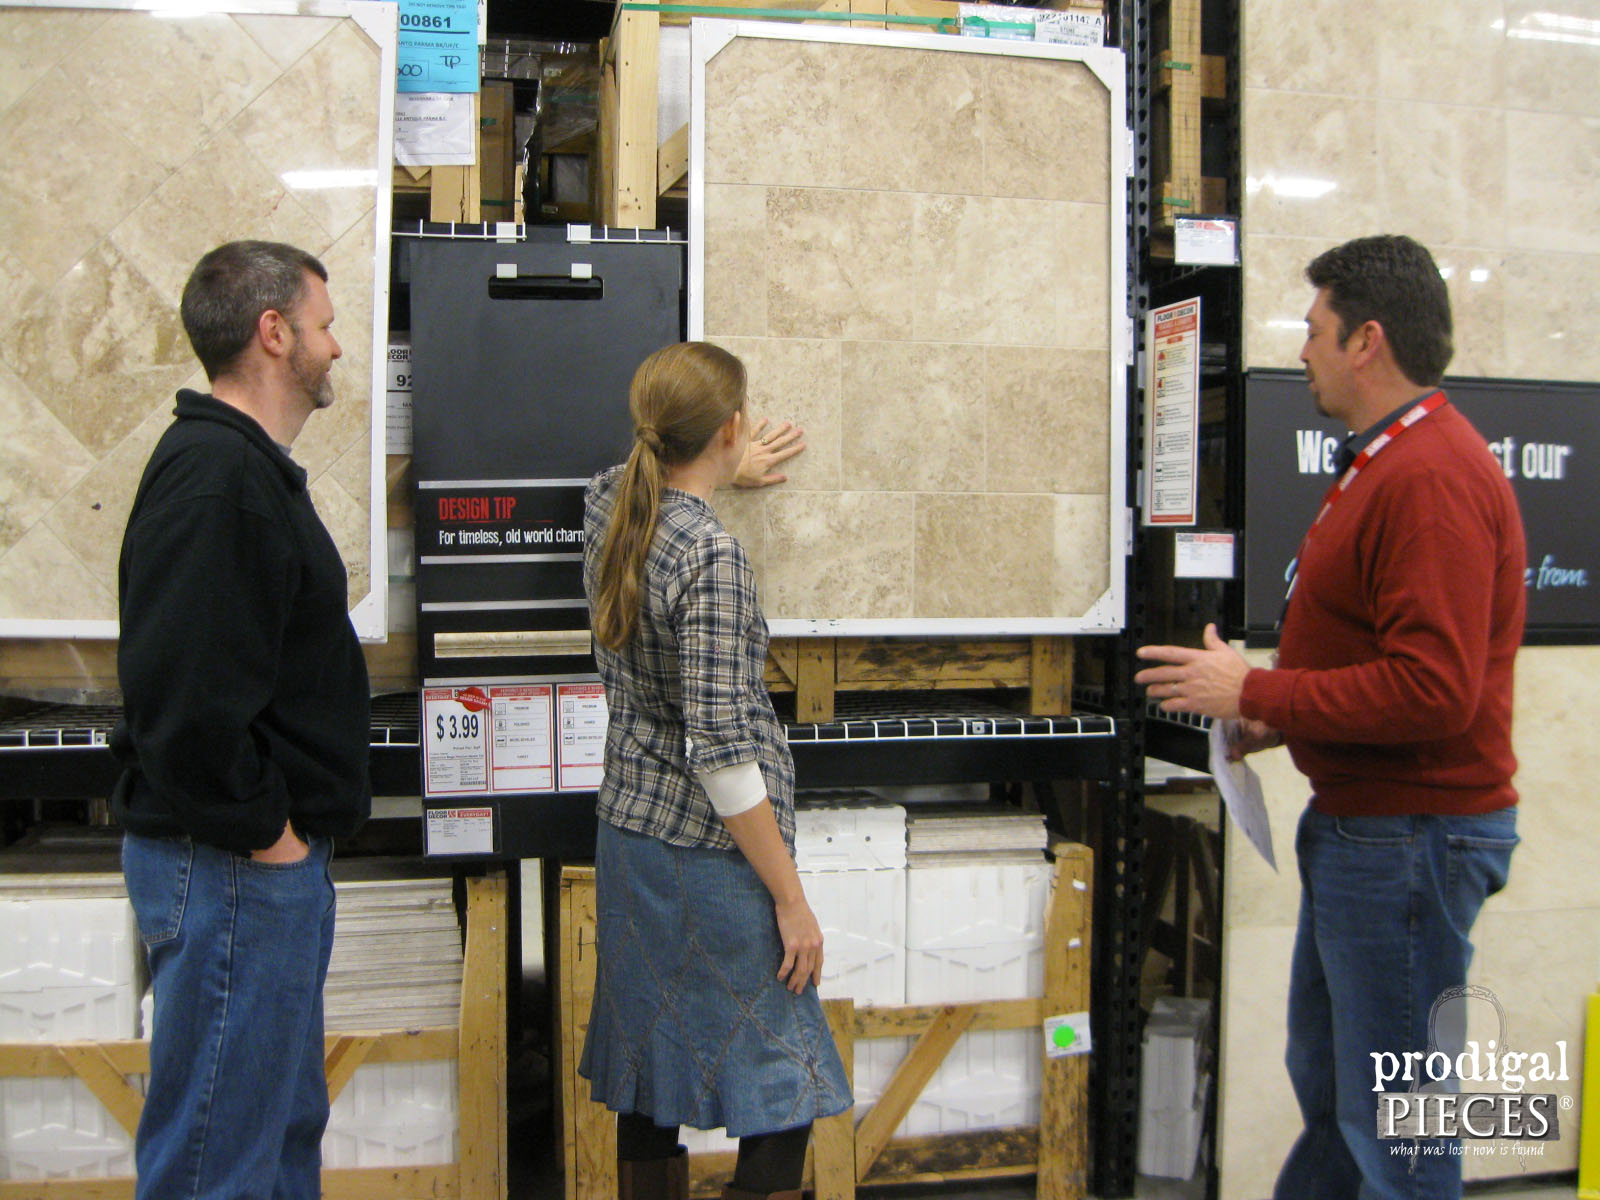 Looking at Kitchen Floor Tile at Floor & Decor | Prodigal Pieces | www.prodigalpieces.com